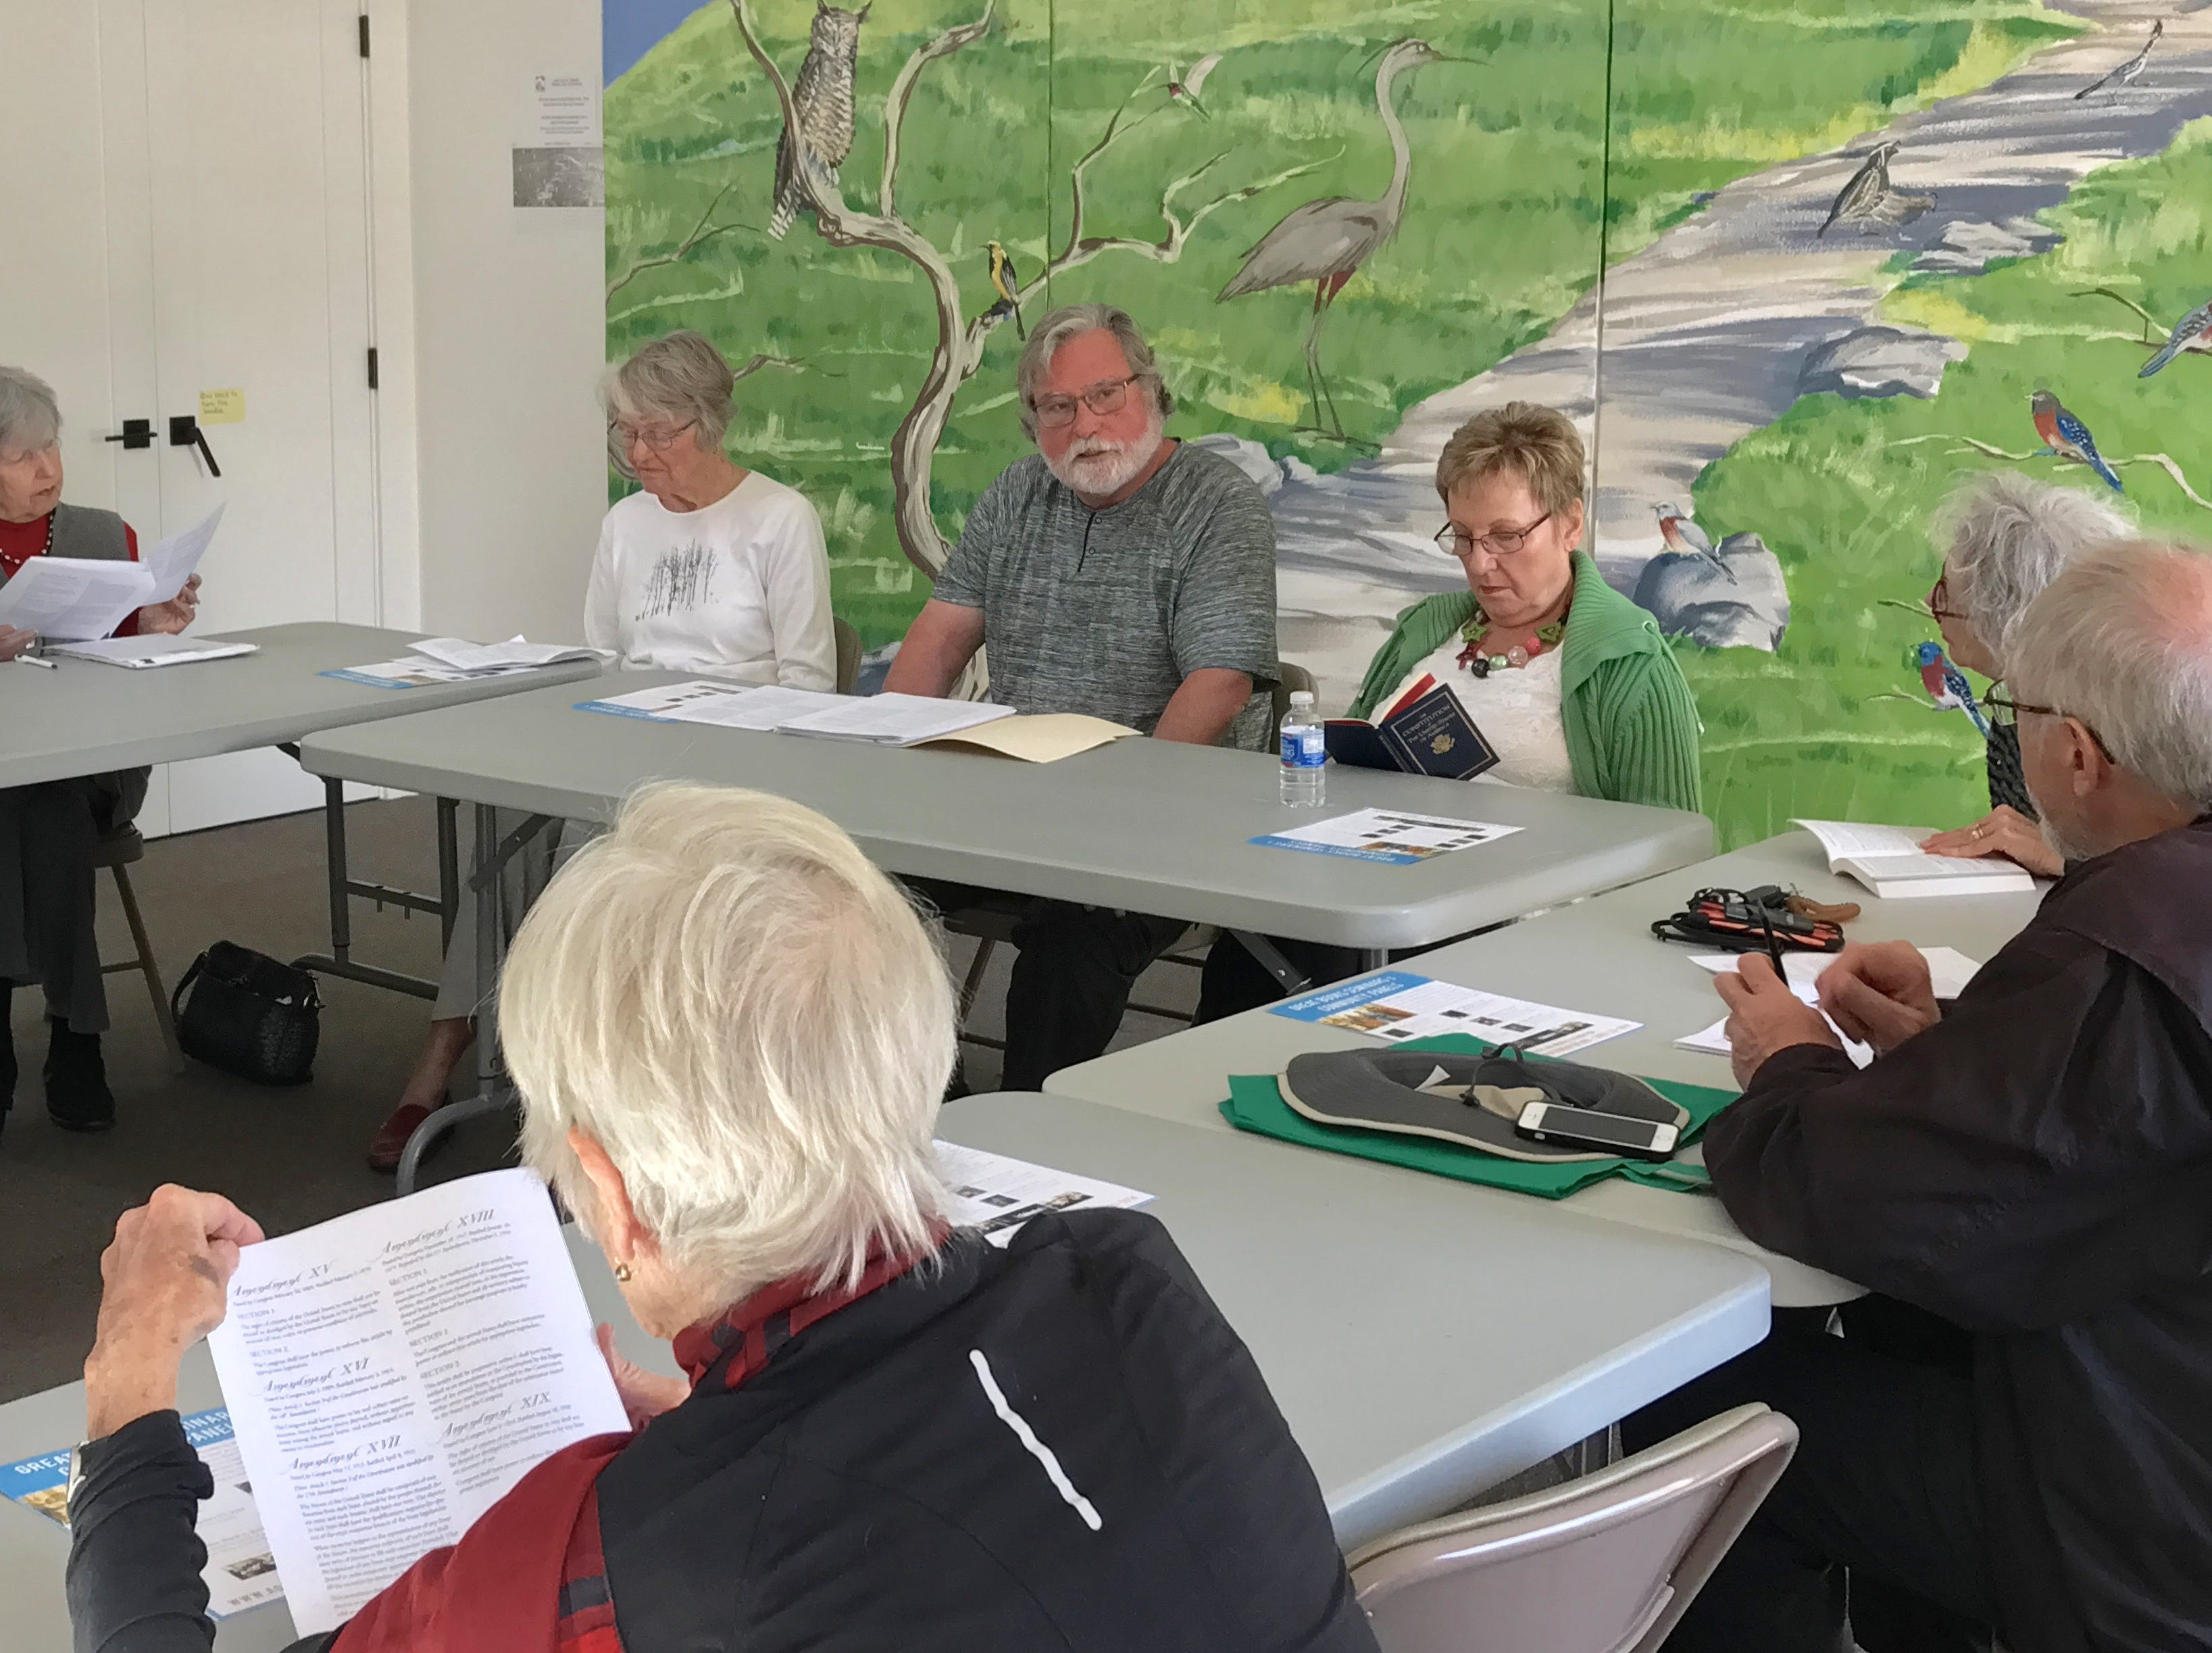 Barry Rabe, of Ojai, deliberates how to interpret amendments in the U.S. Constitution during an Agora Foundation seminar at the Ojai Library.